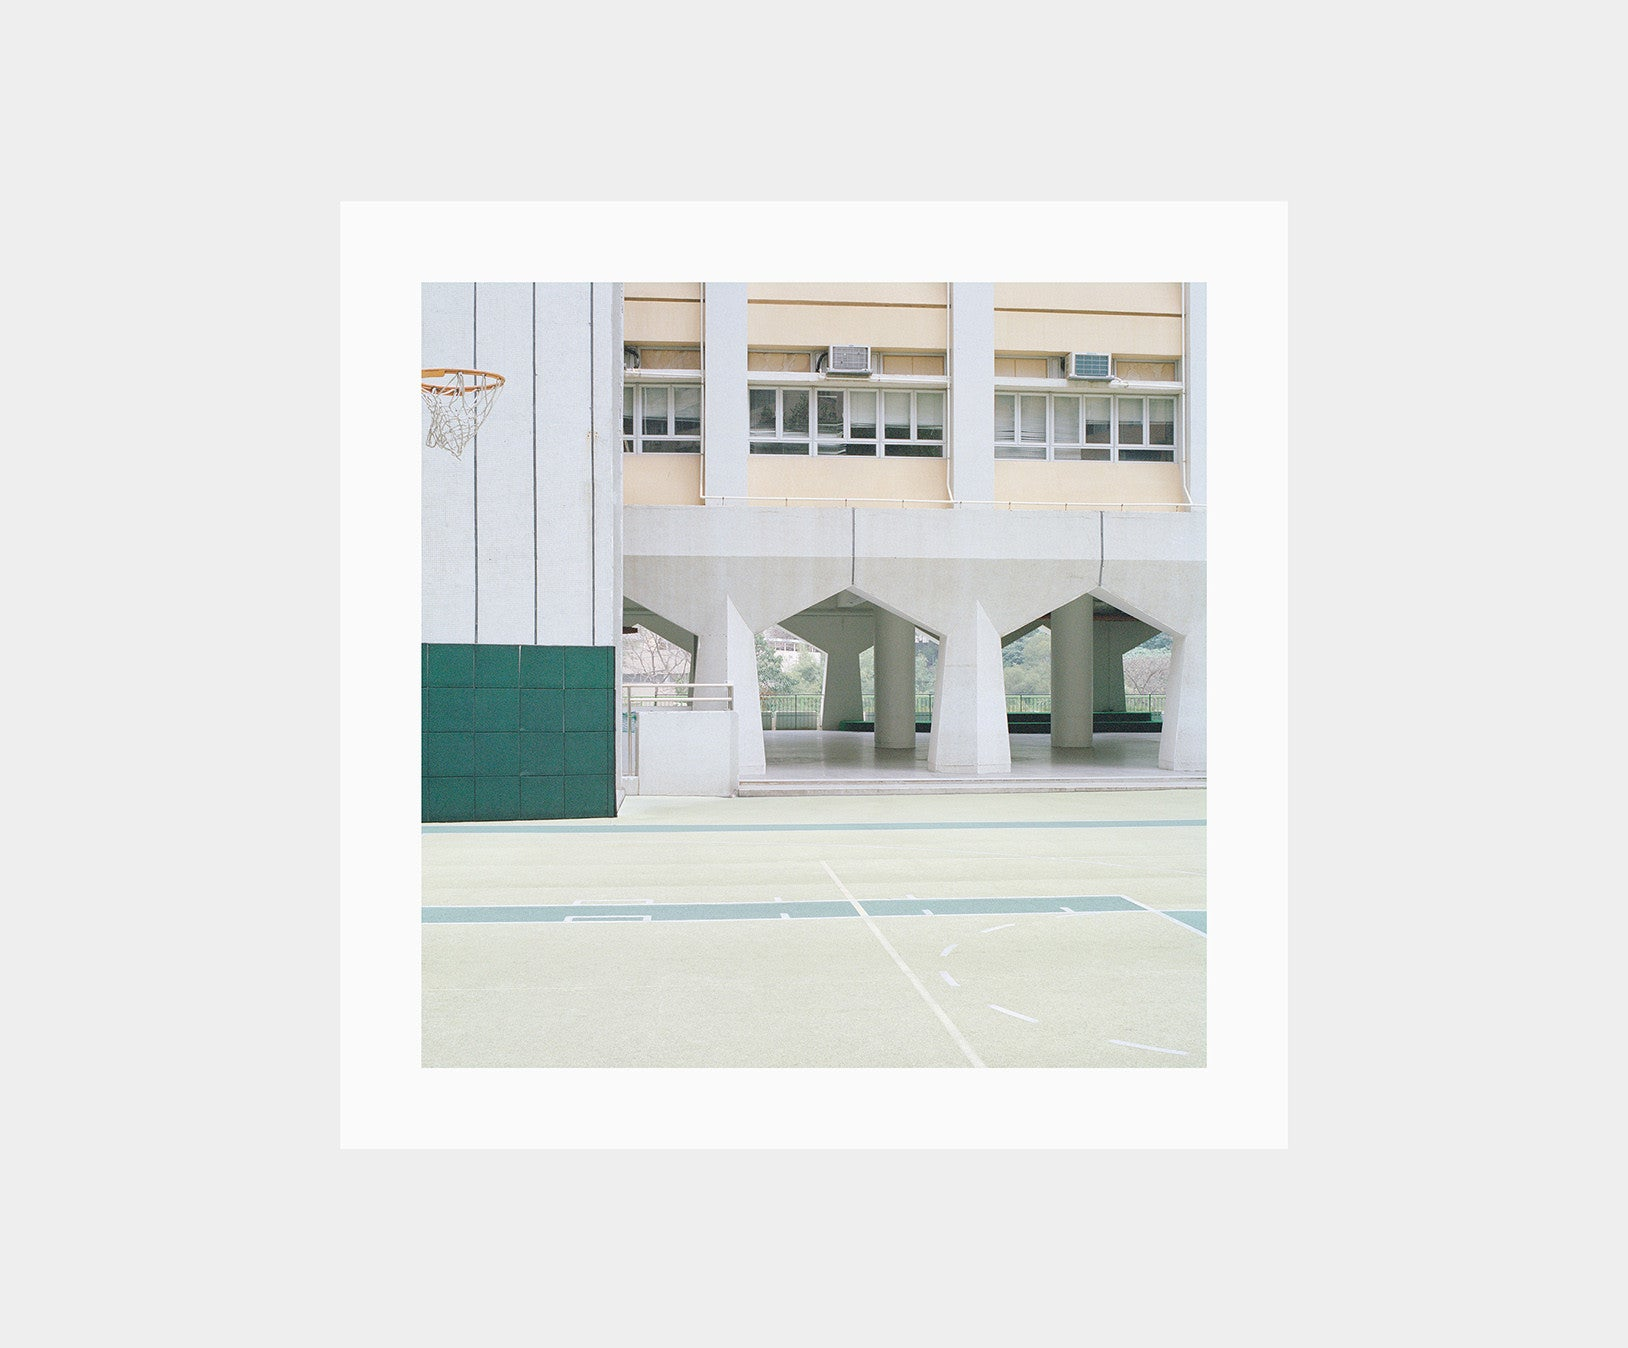 Courts 02 by Ward Roberts – Print 01 (Edition of 200)